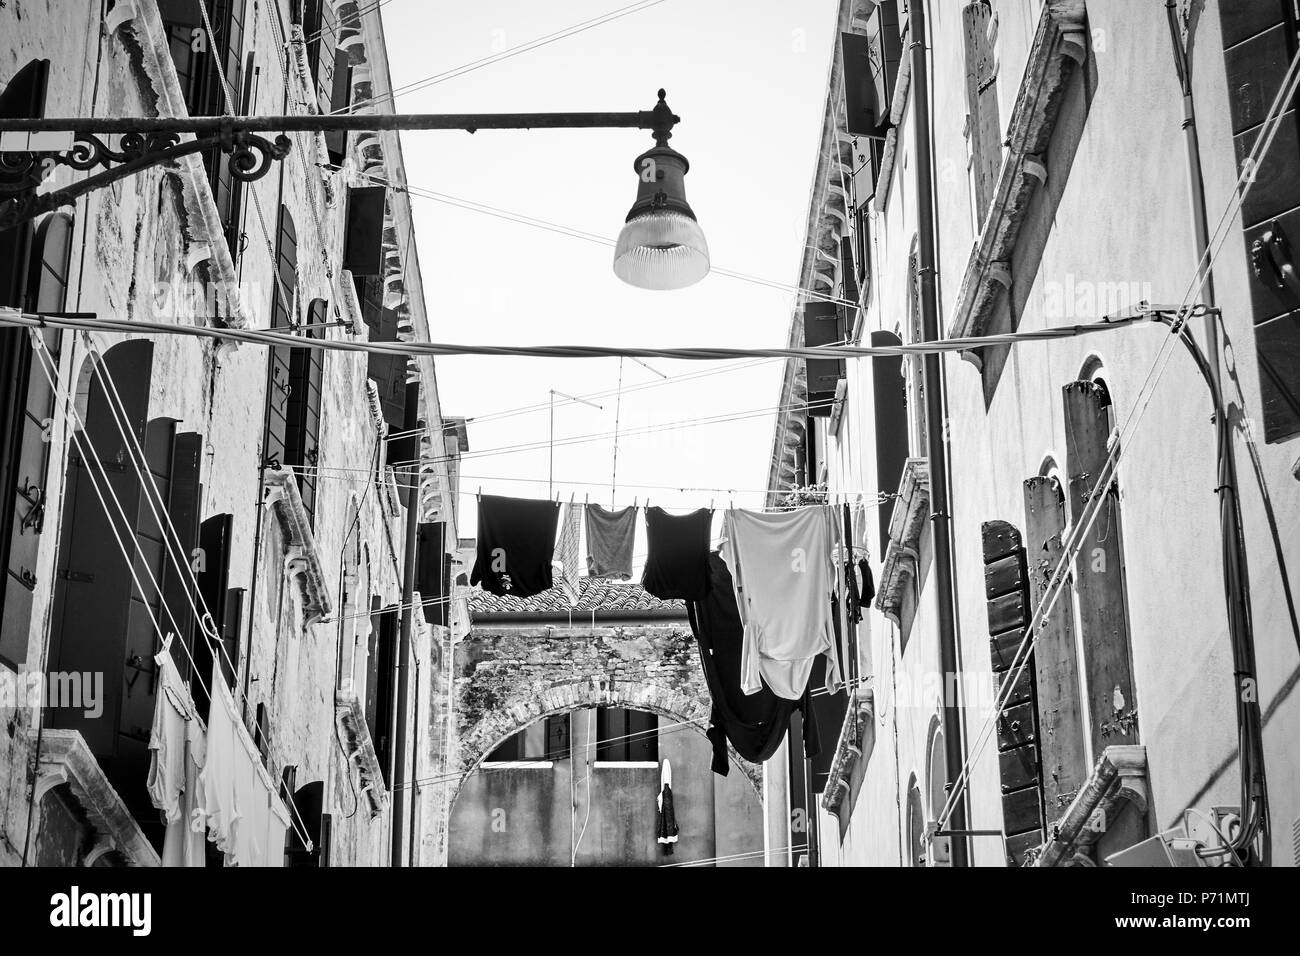 Venetian street with drying clothes, Venice, Italy - Stock Image